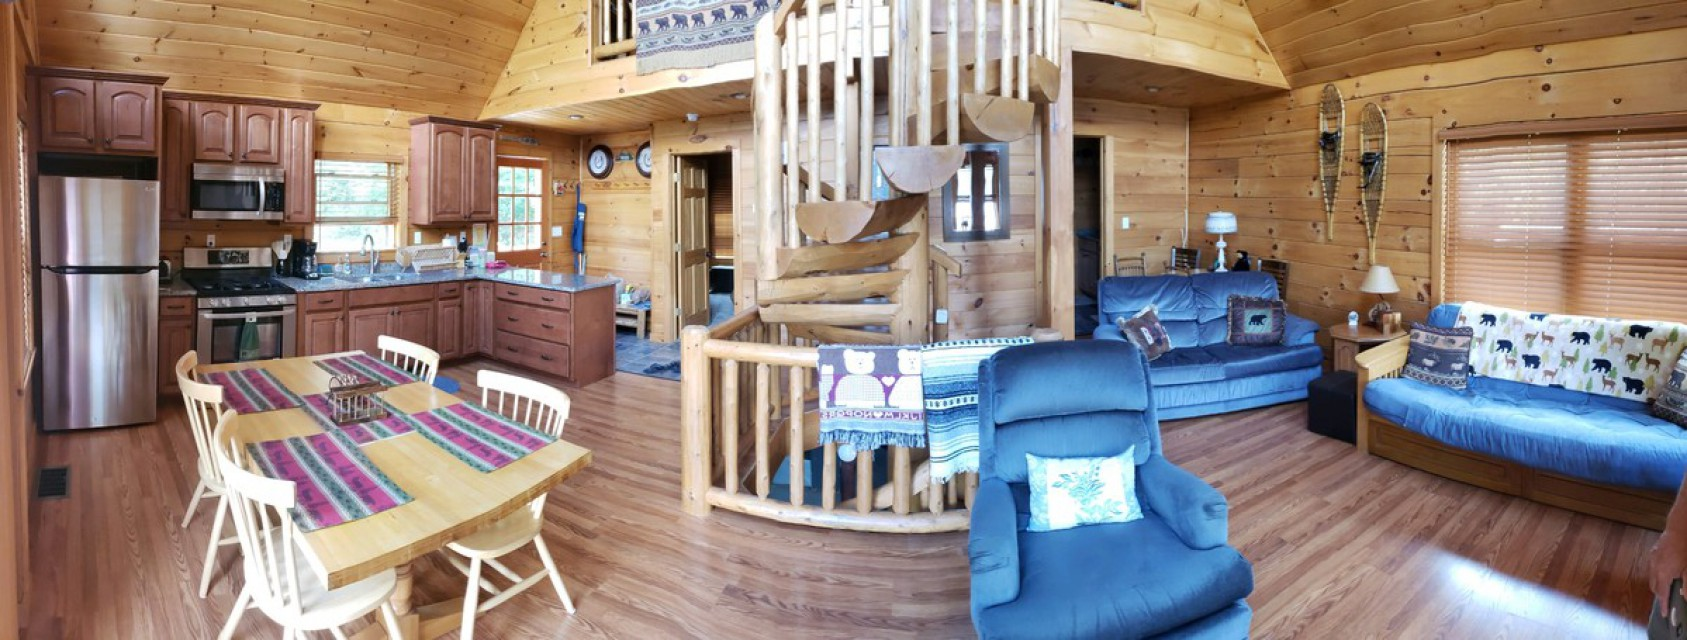 Kitchen, living room, spiral log staircase